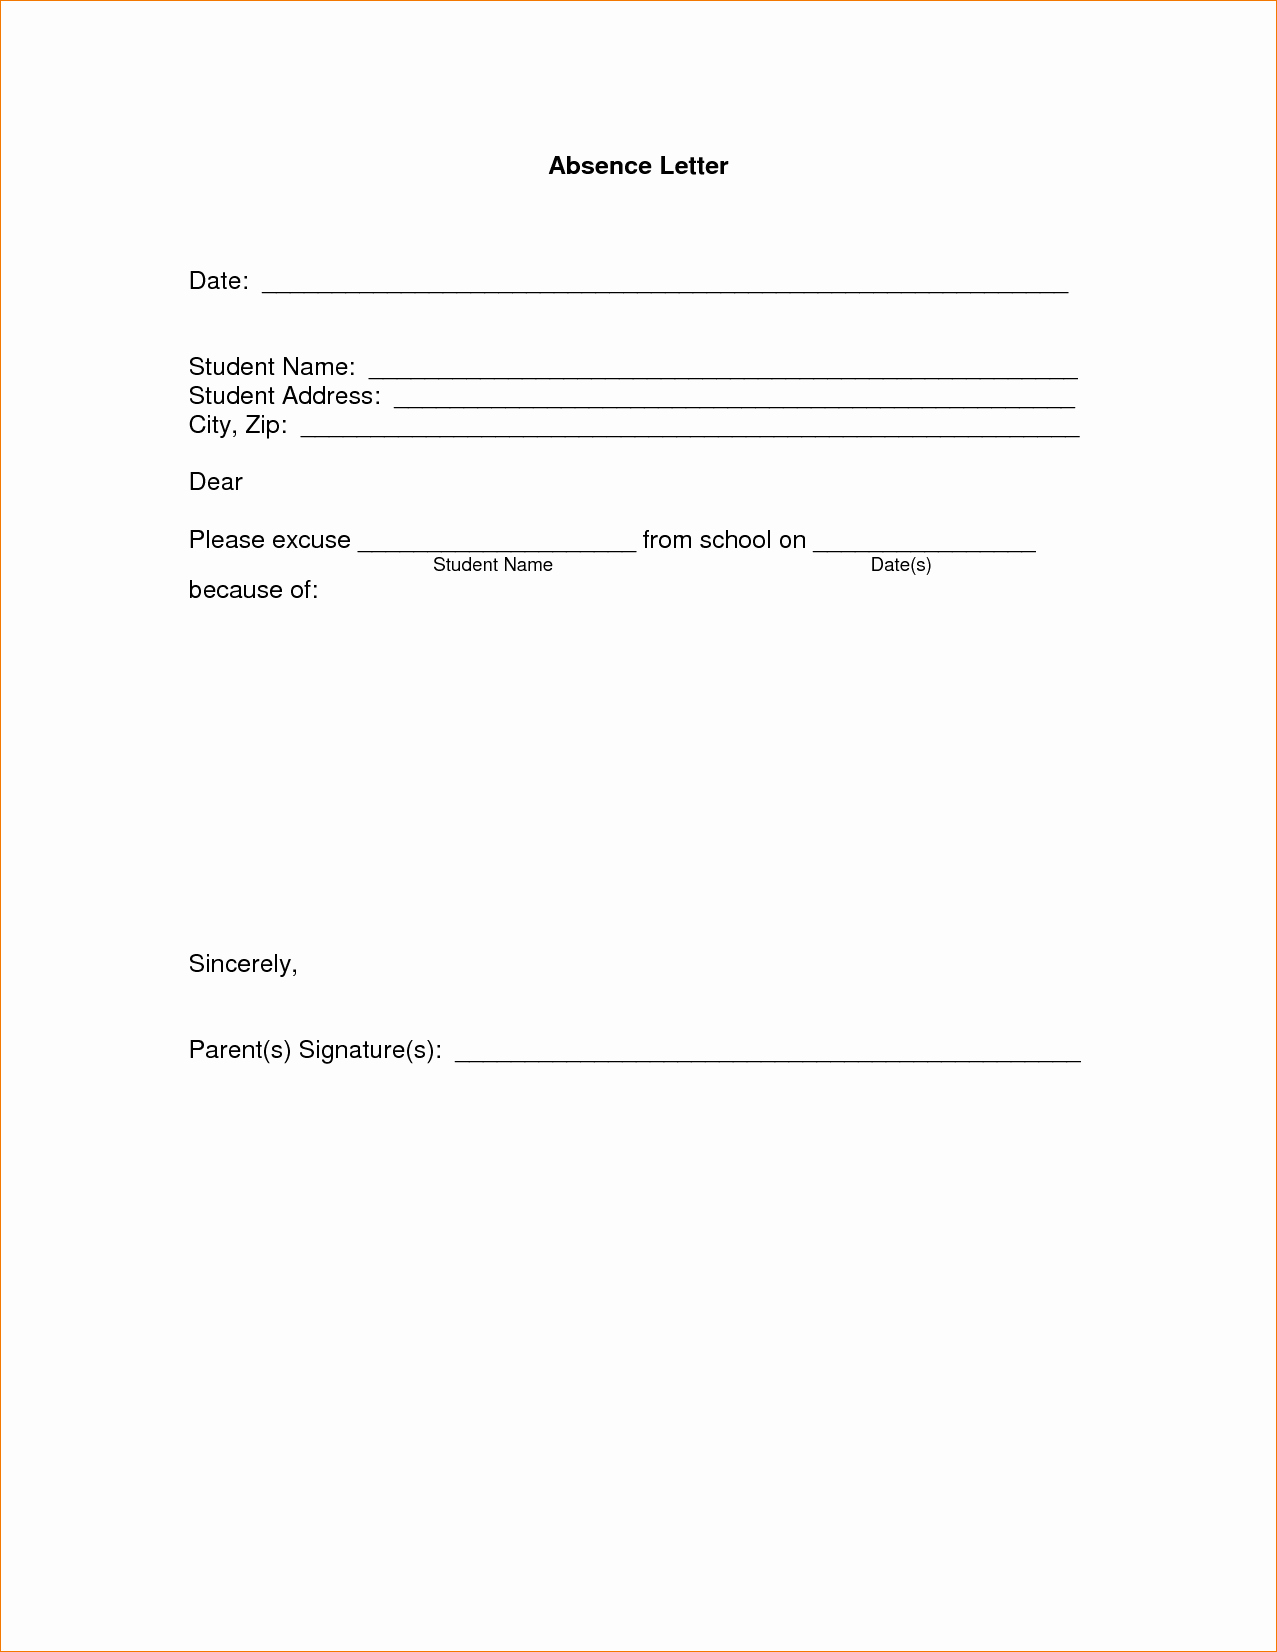 Absence Note for School Examples New 11 Absence Excuse Letteragenda Template Sample